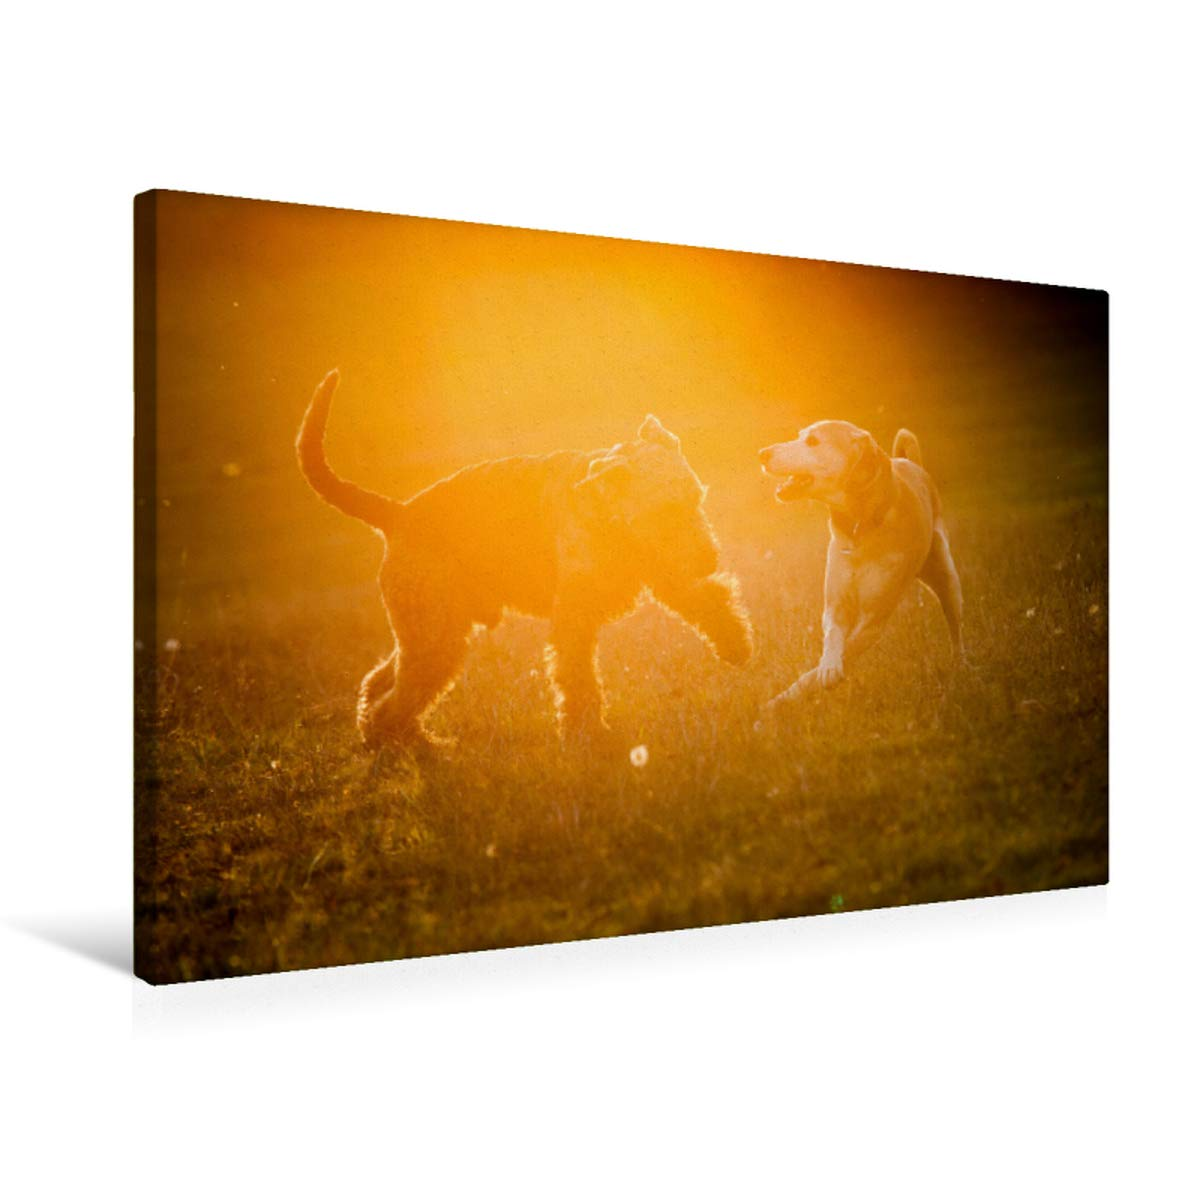 75x50 Premium Textile Canvas 75 x 50 cm Cross-Playing Dogs at Sunset